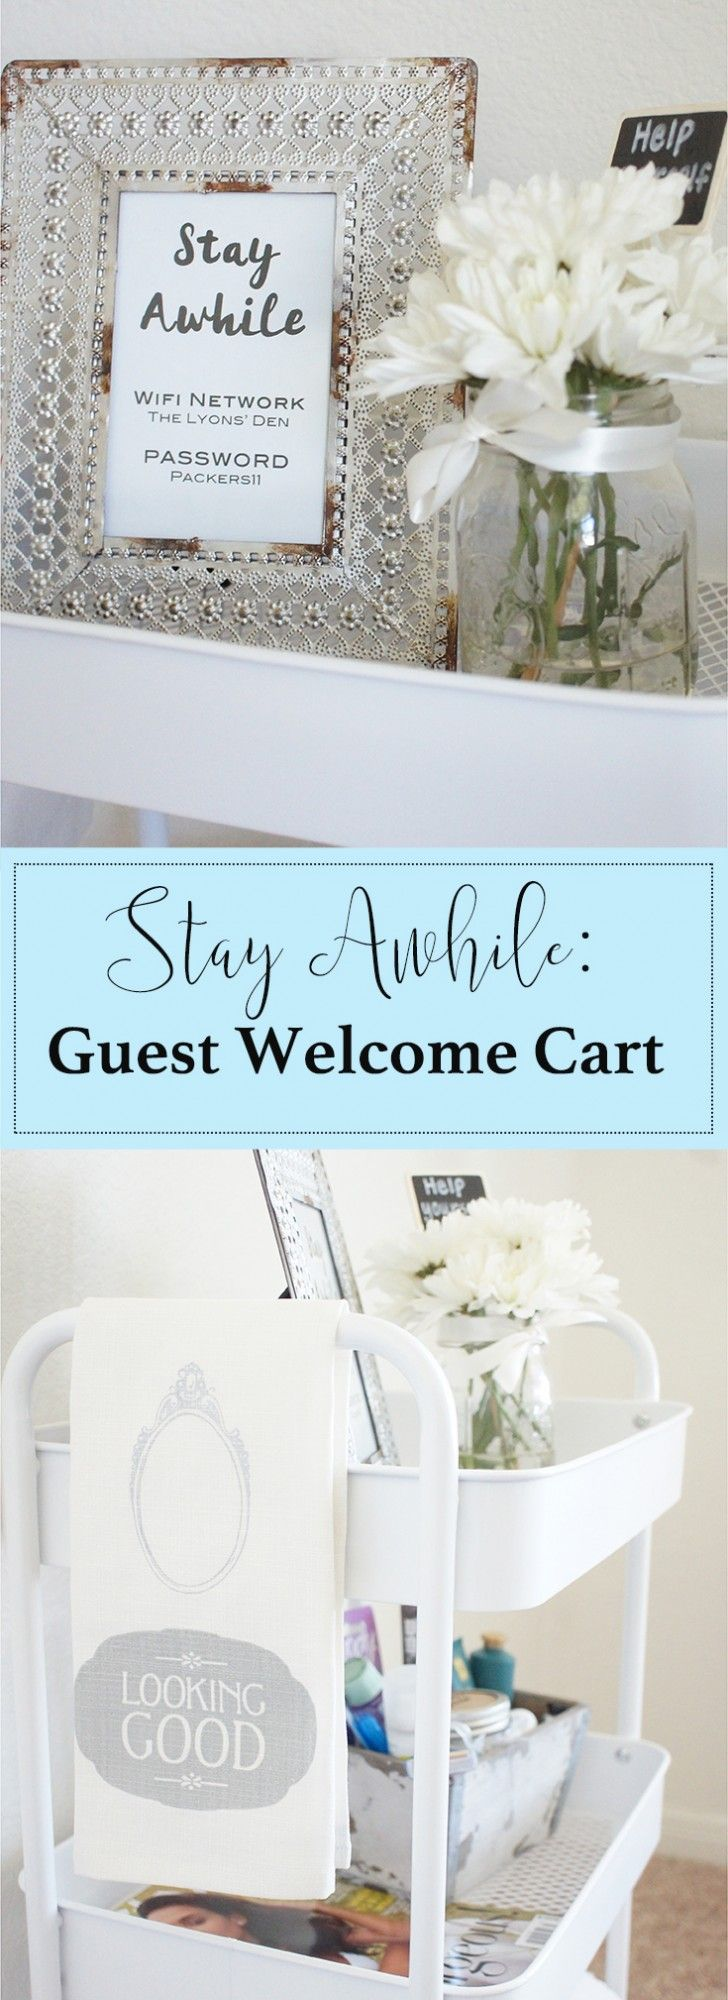 Craftaholics Anonymous® | Stay Awhile: Guest Hospitality Cart